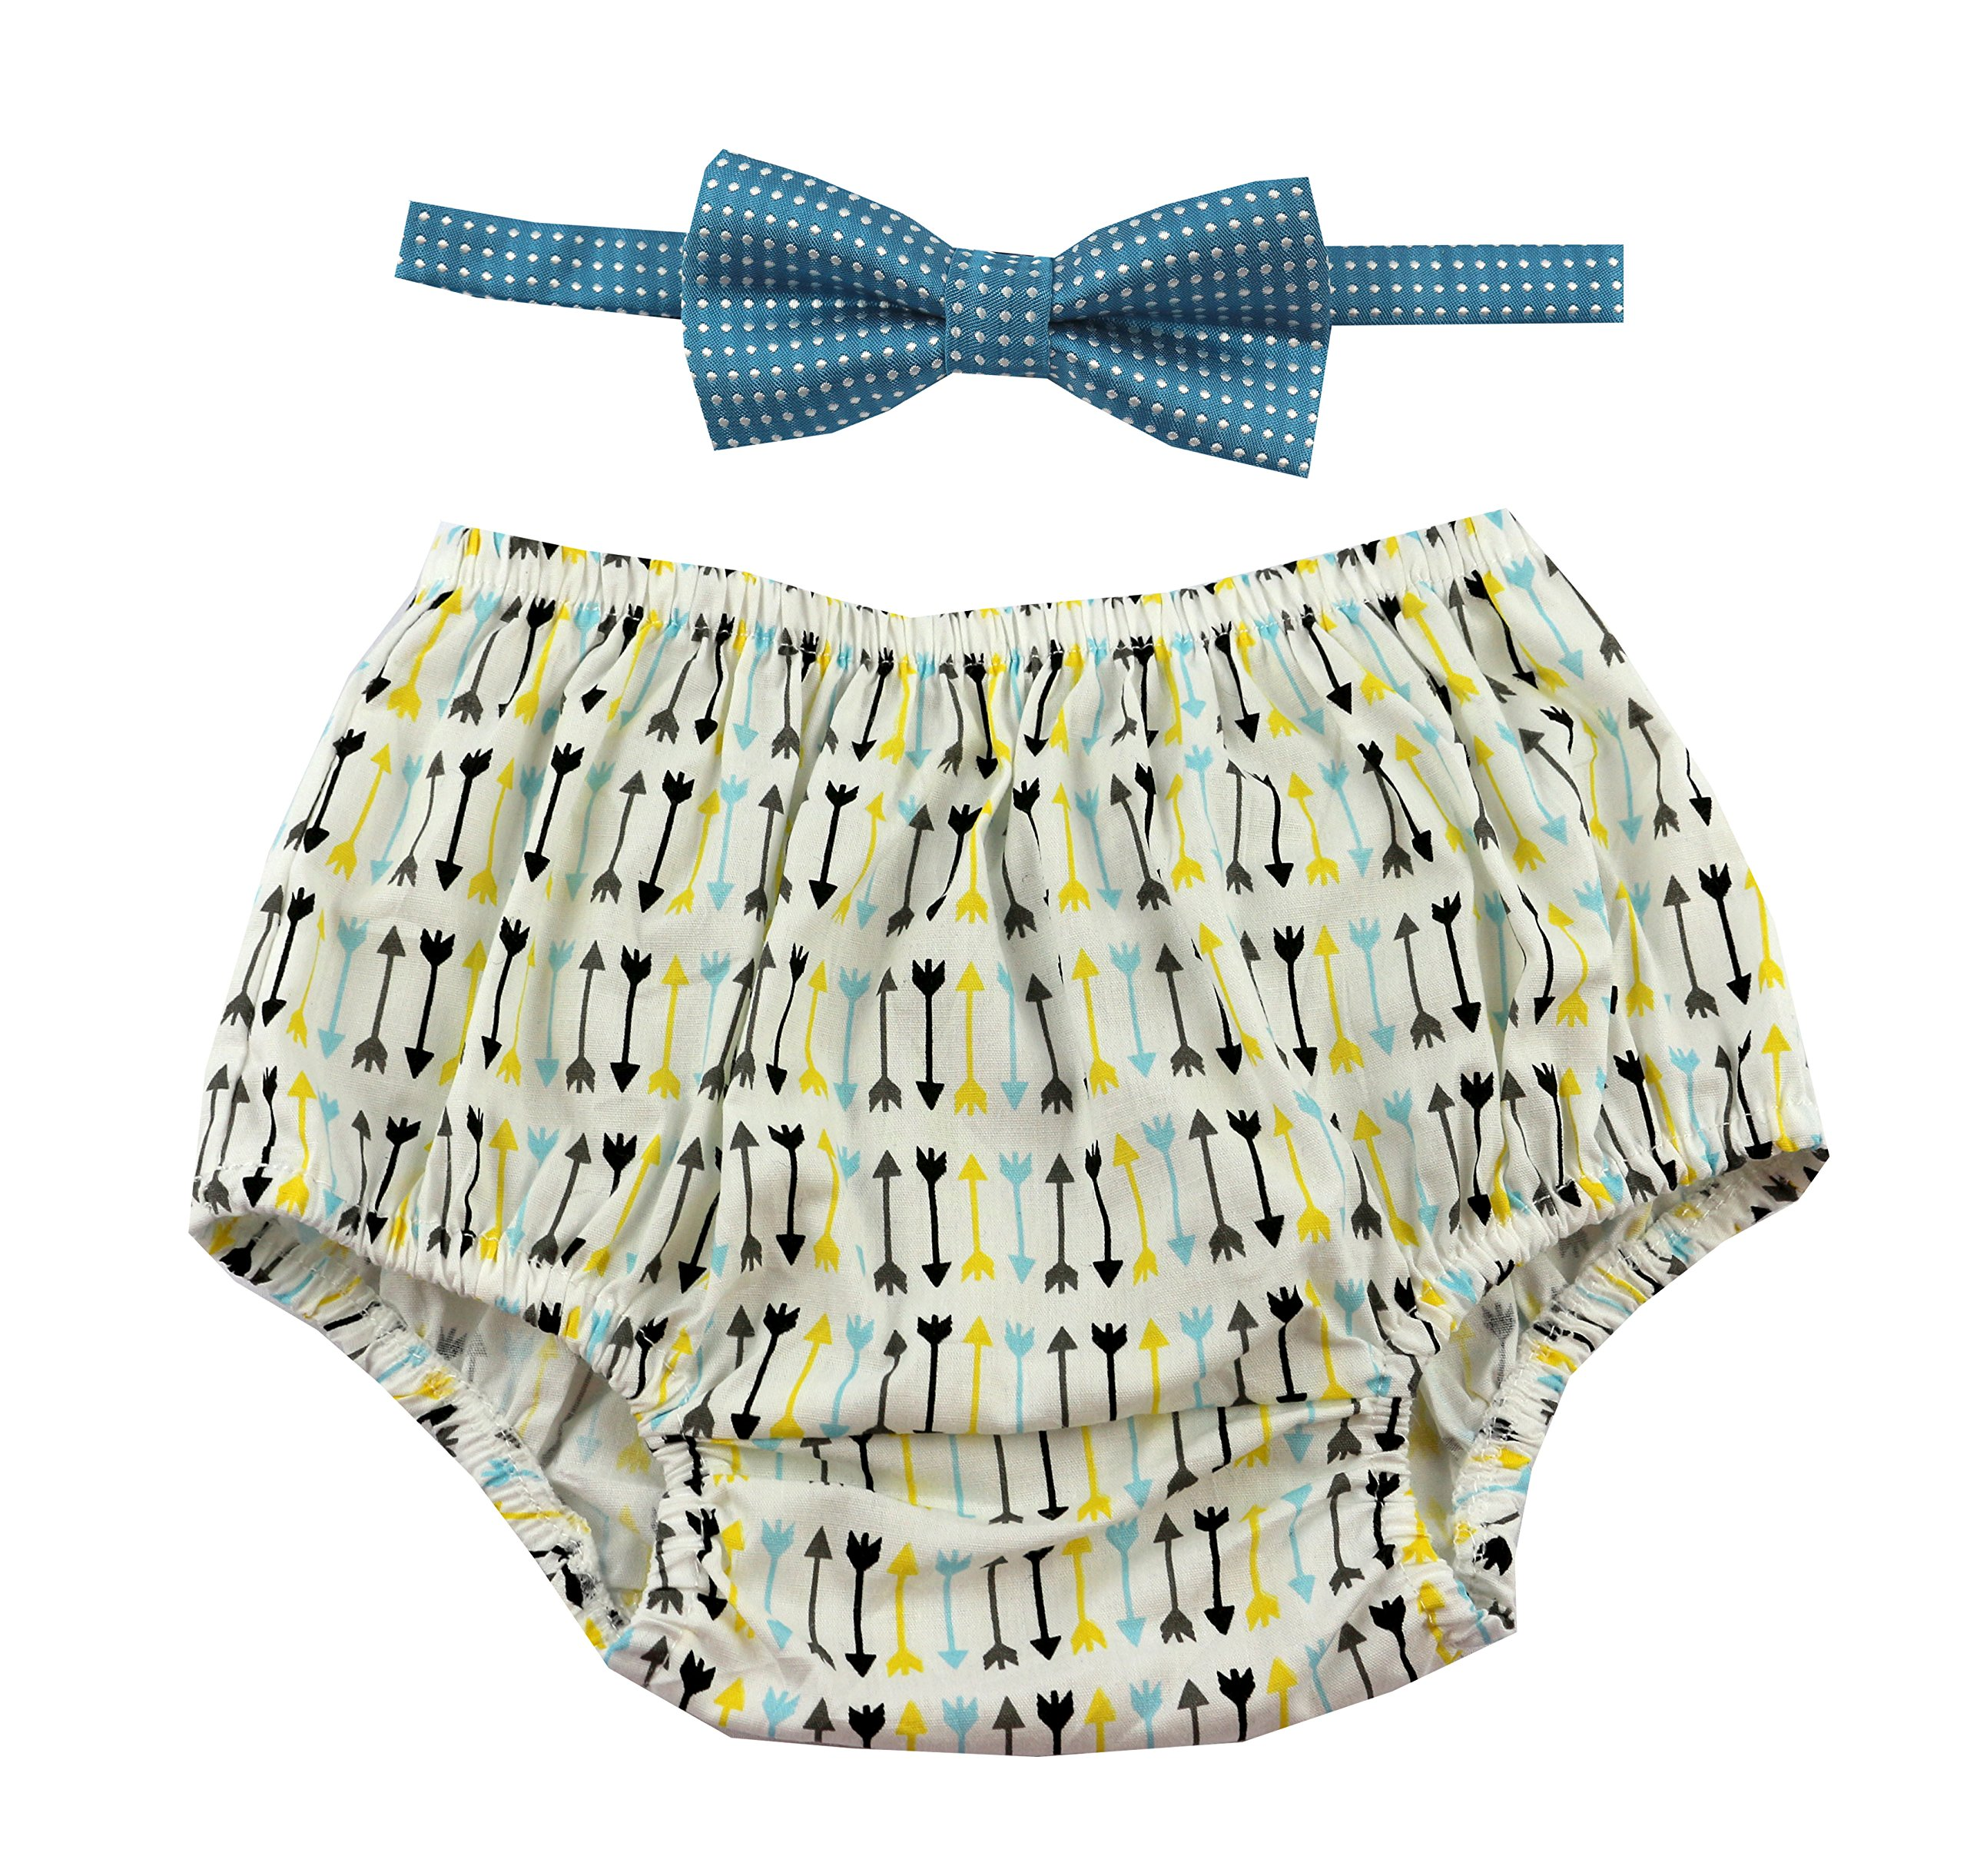 Gentlemen Ties Cake Smash Outfit Boy First Birthday Includes Bloomers And Bow Tie Multicolor Arrows